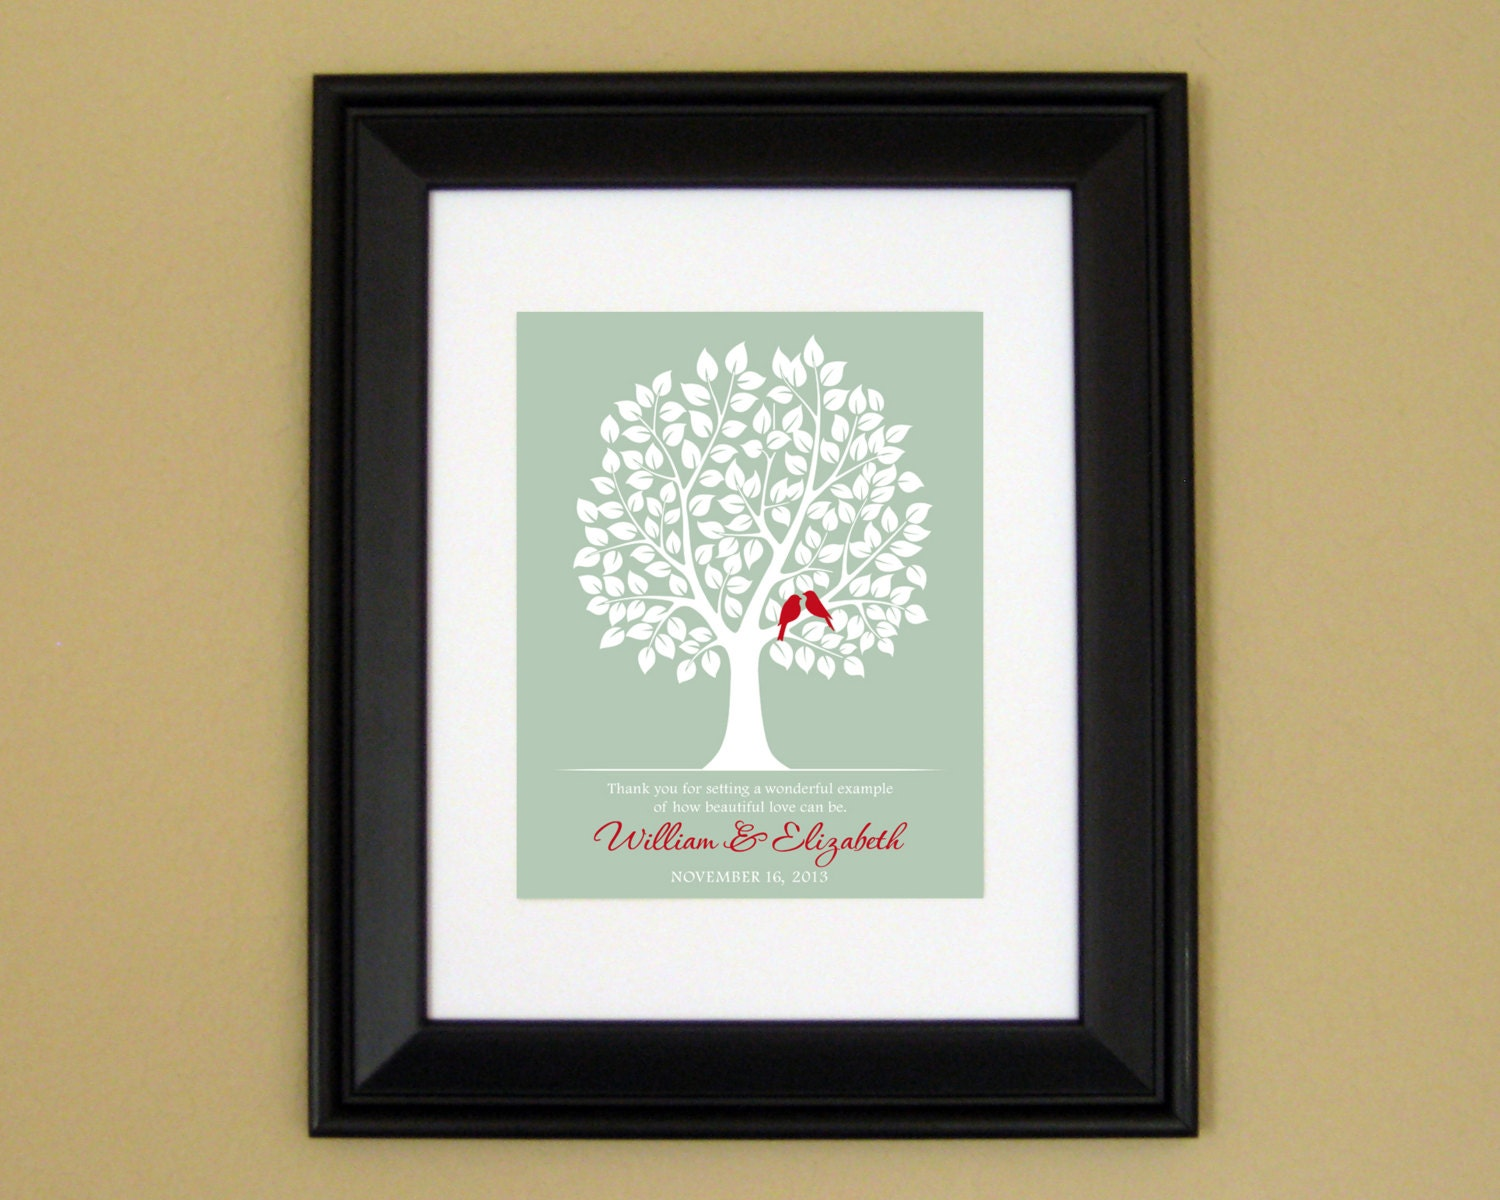 Wedding Gifts Between Parents : Wedding Gift for Parents or In-Laws Thank by CedarHouseKeepsakes2